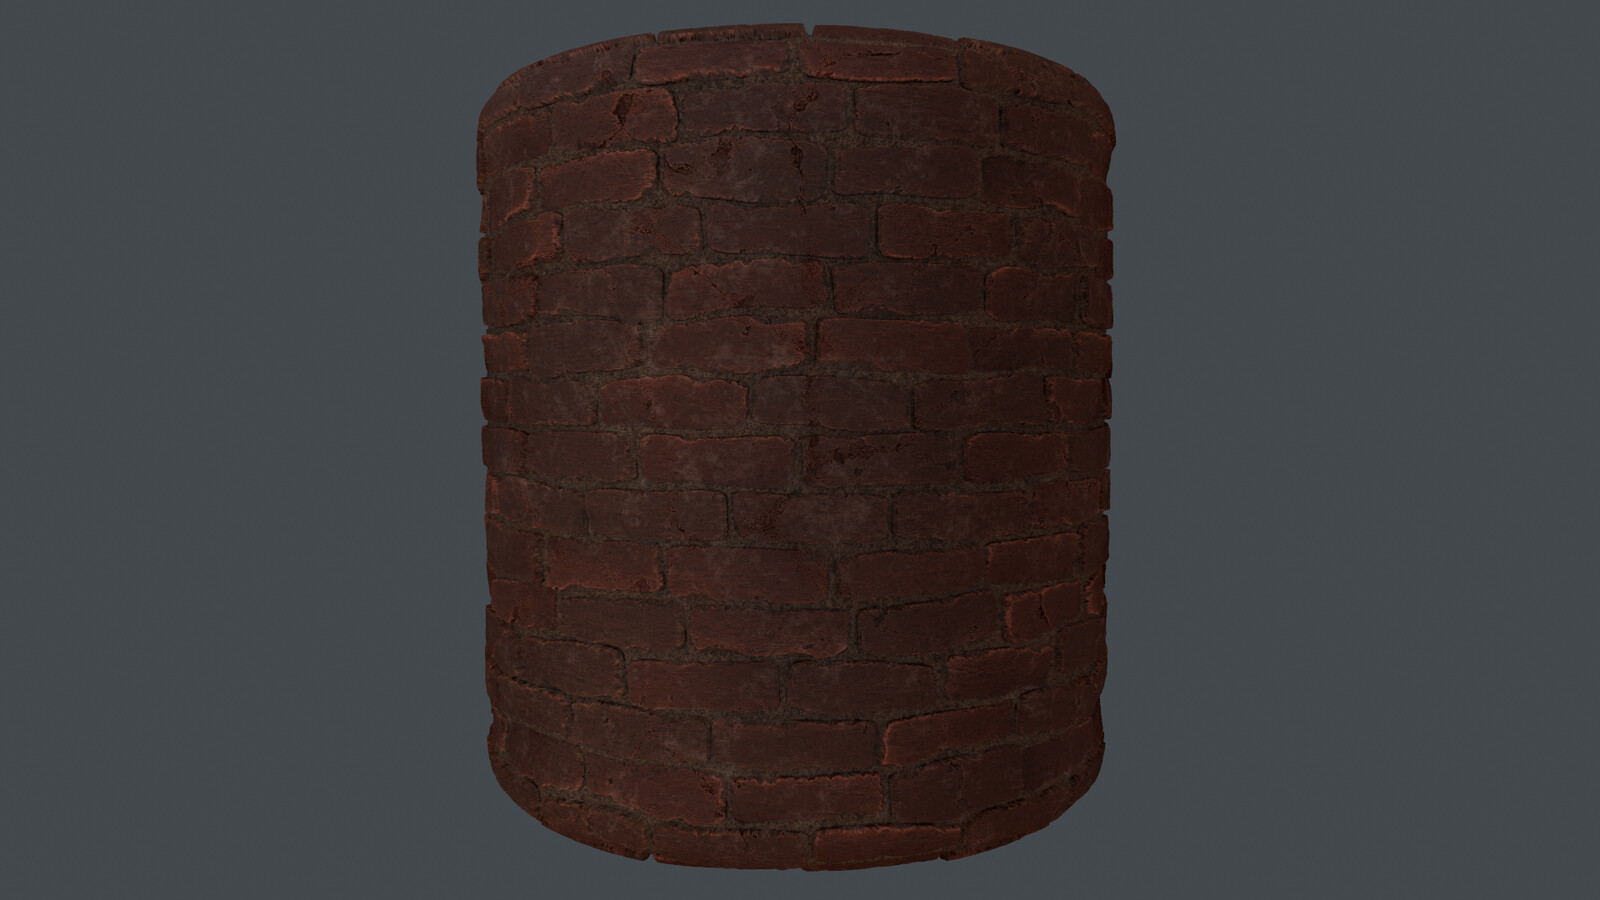 brick material made in substance designer